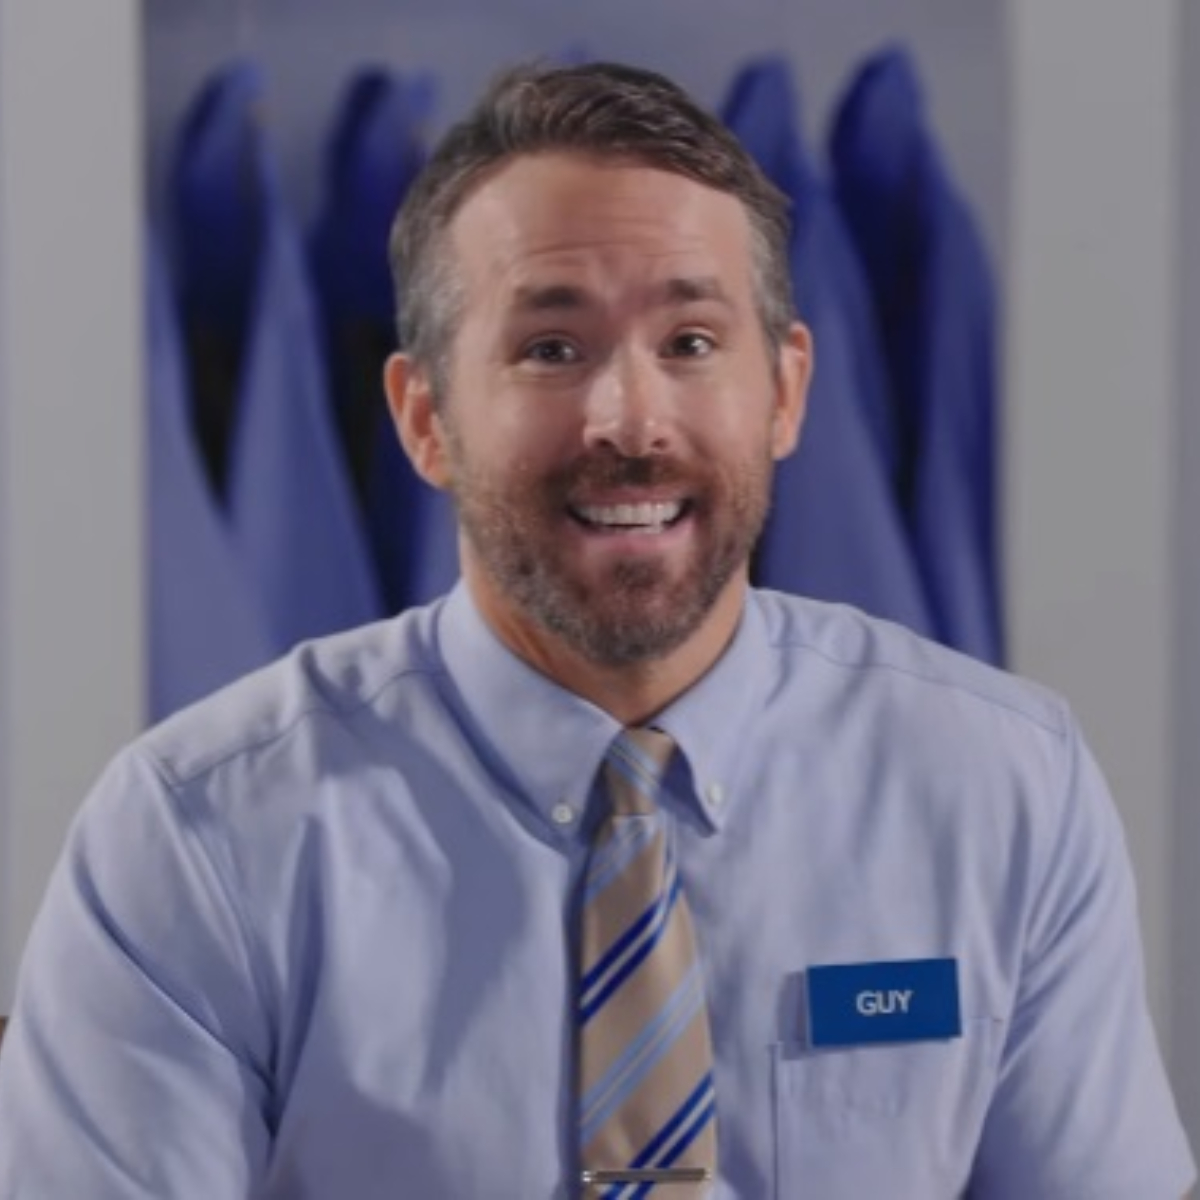 Free Guy Ryan Reynolds Announces The Release Of The Film S Trailer In A Hilarious Way Check It Out Pinkvilla